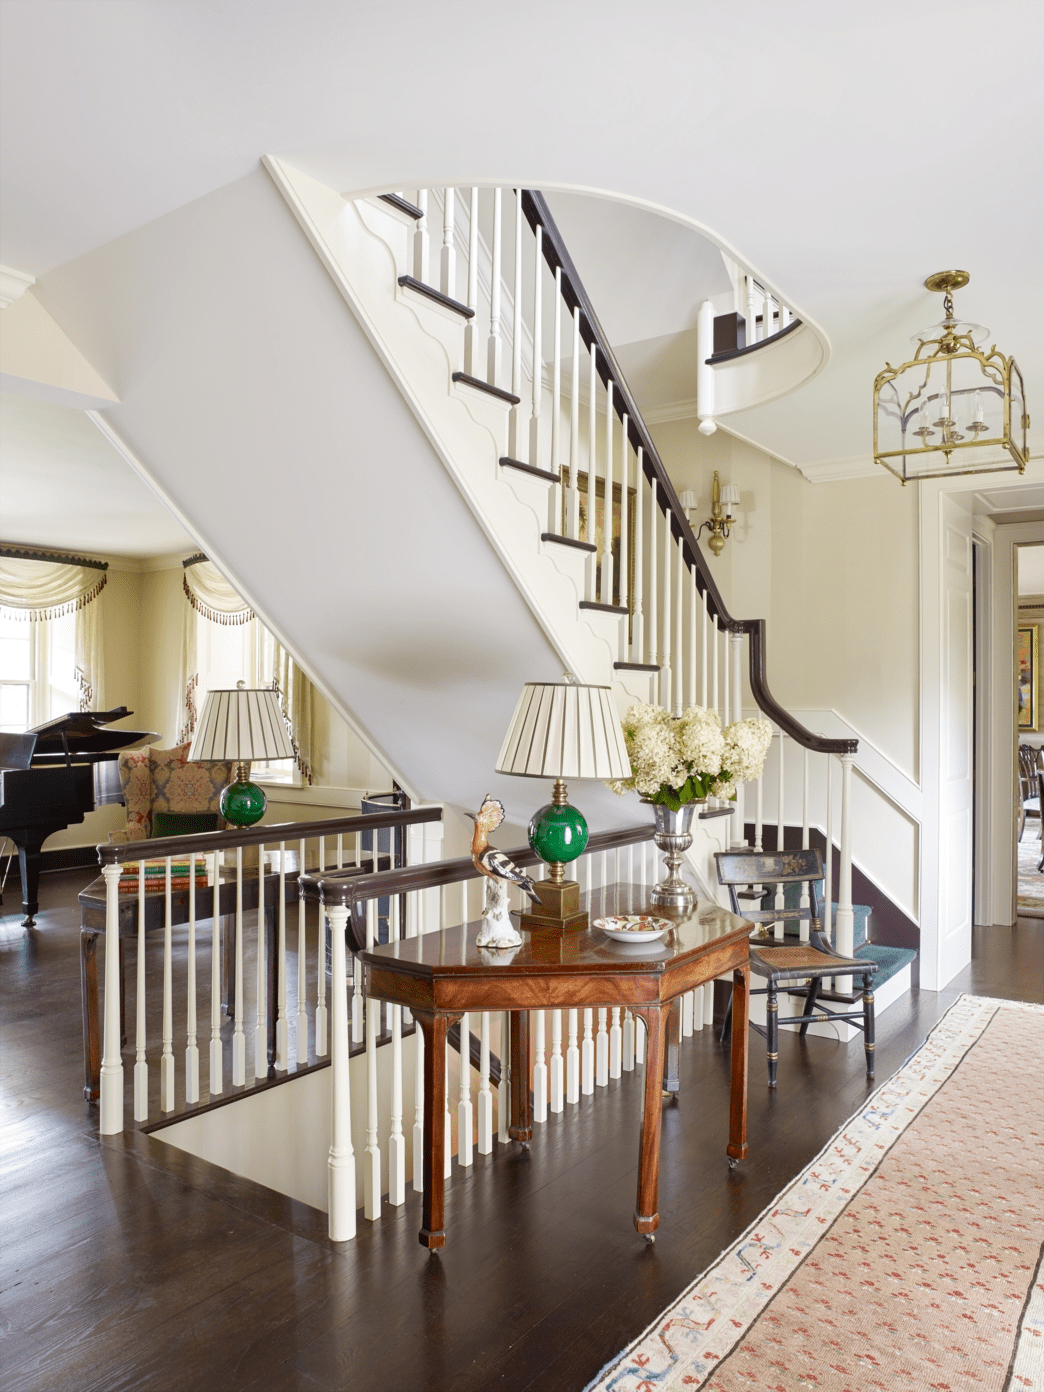 36 Stunning Staircases Ideas Gorgeous Staircase Home Designs   Half Wall Staircase Design   Railing   Limited Space Small Stair   Kitchen   Closed   Contemporary